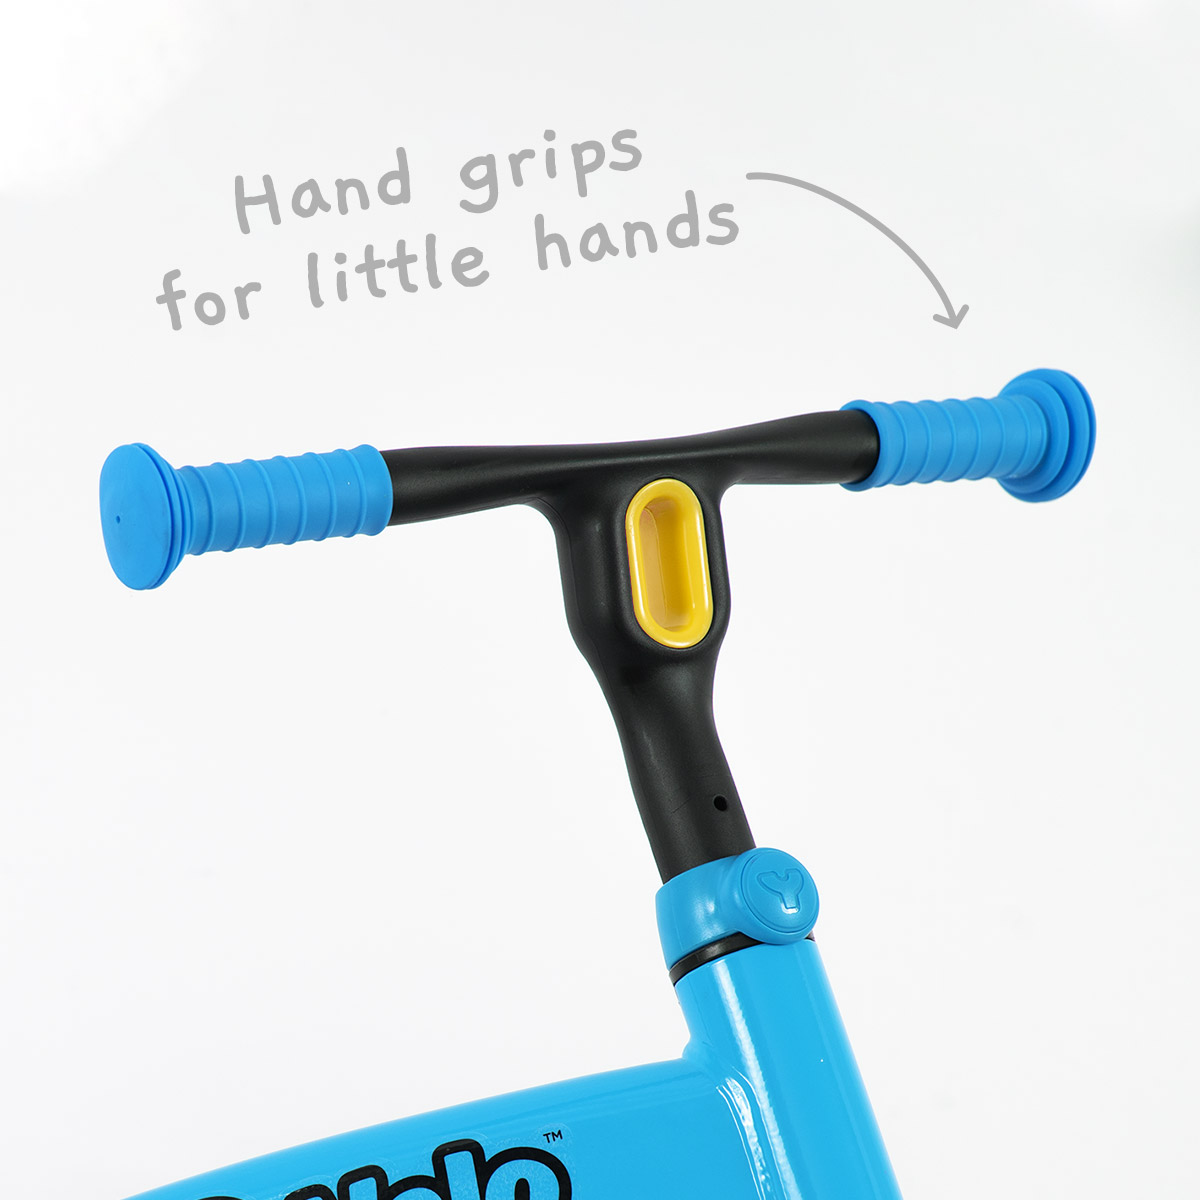 Hand grips for little hands